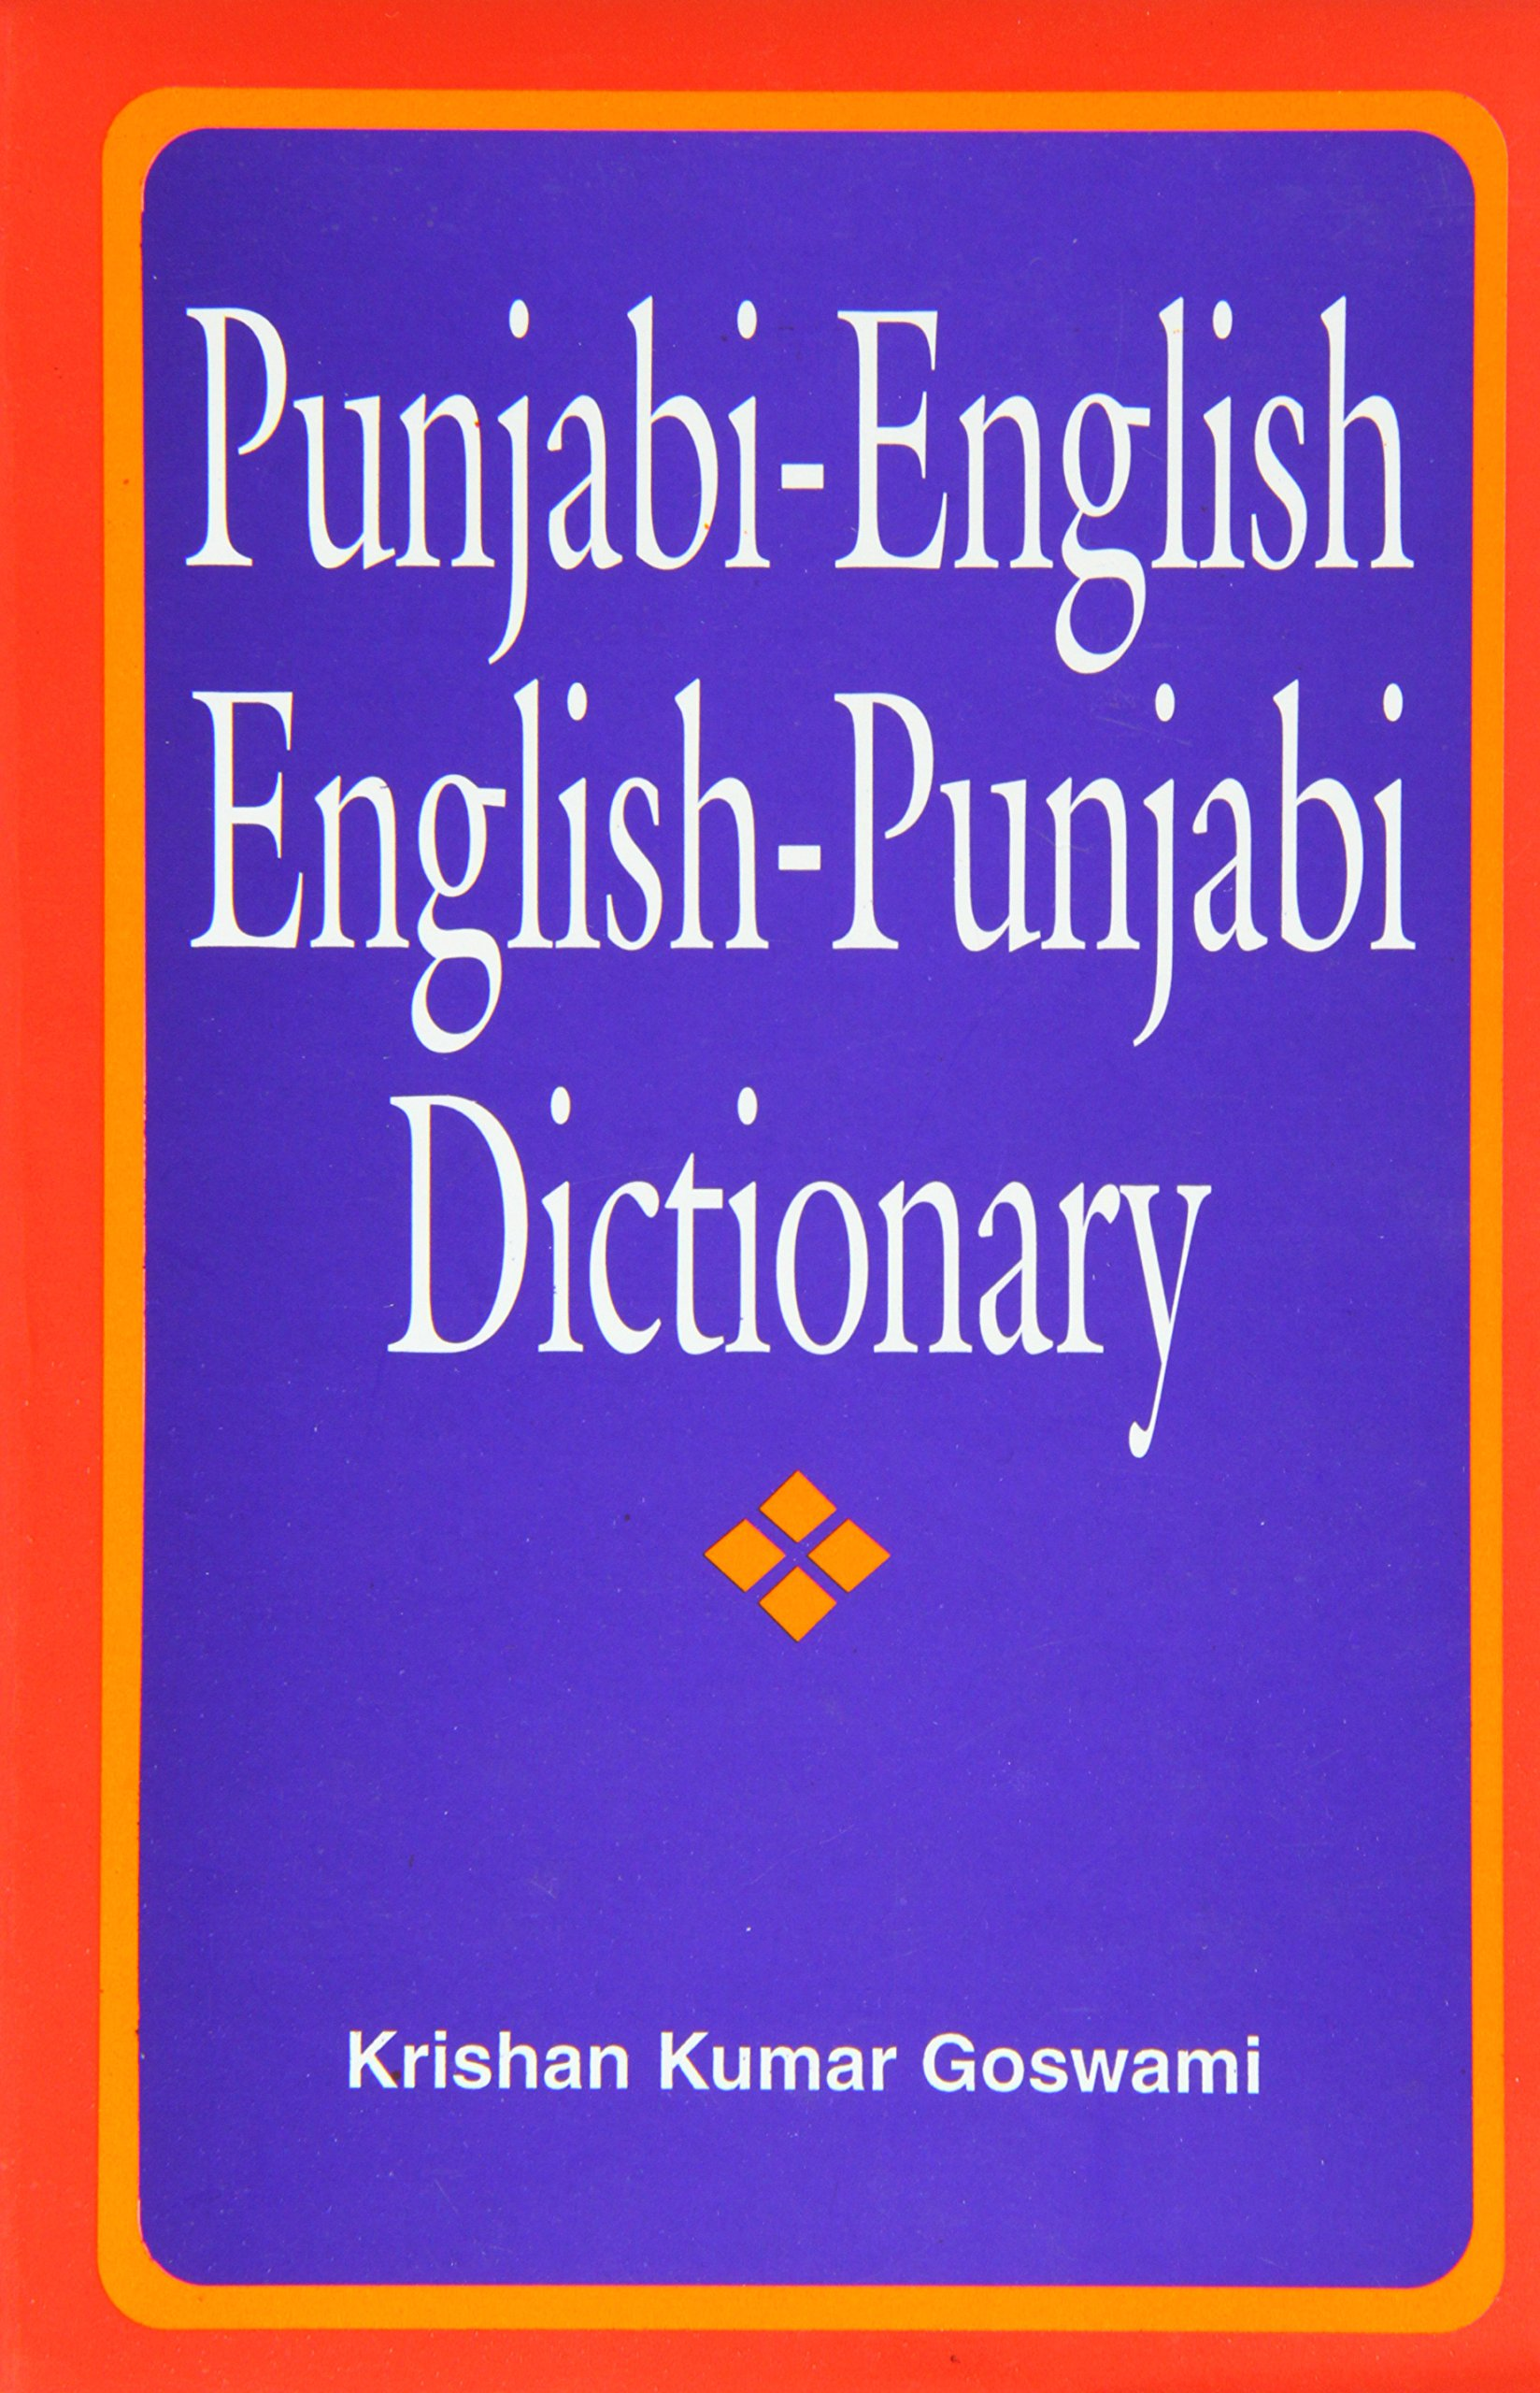 Punjabi dictionary for android apk download.